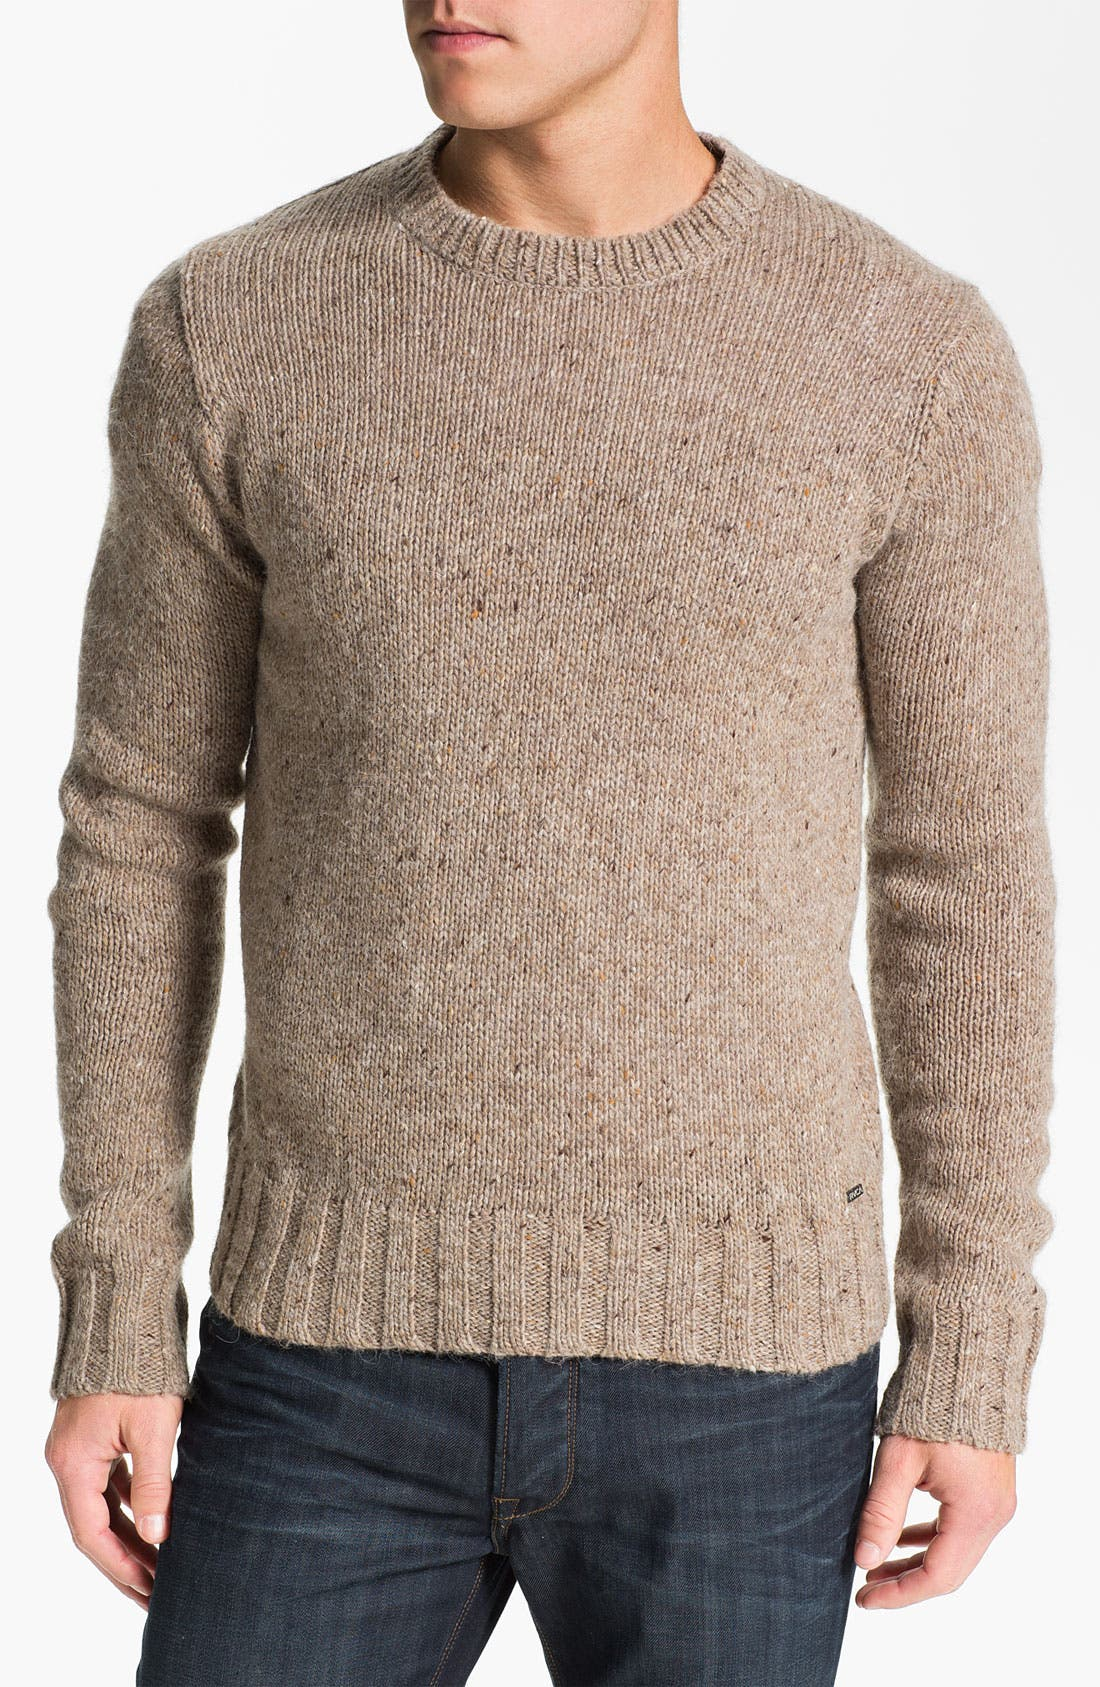 Main Image - RVCA 'Ahab' Crewneck Sweater